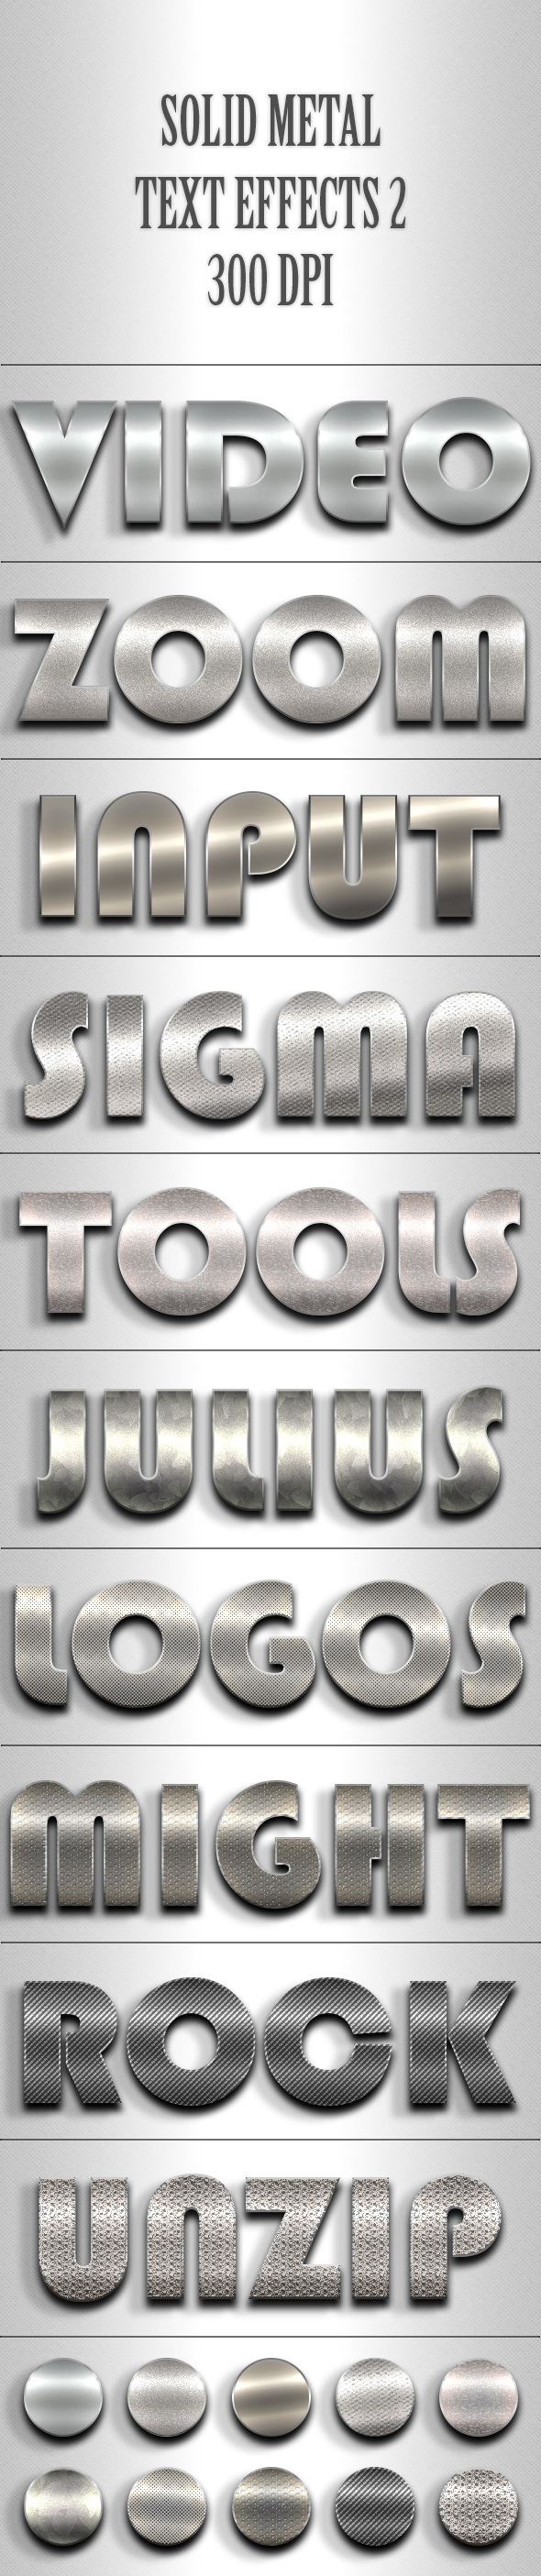 Solid Metal Text Effects 2 - Text Effects Styles